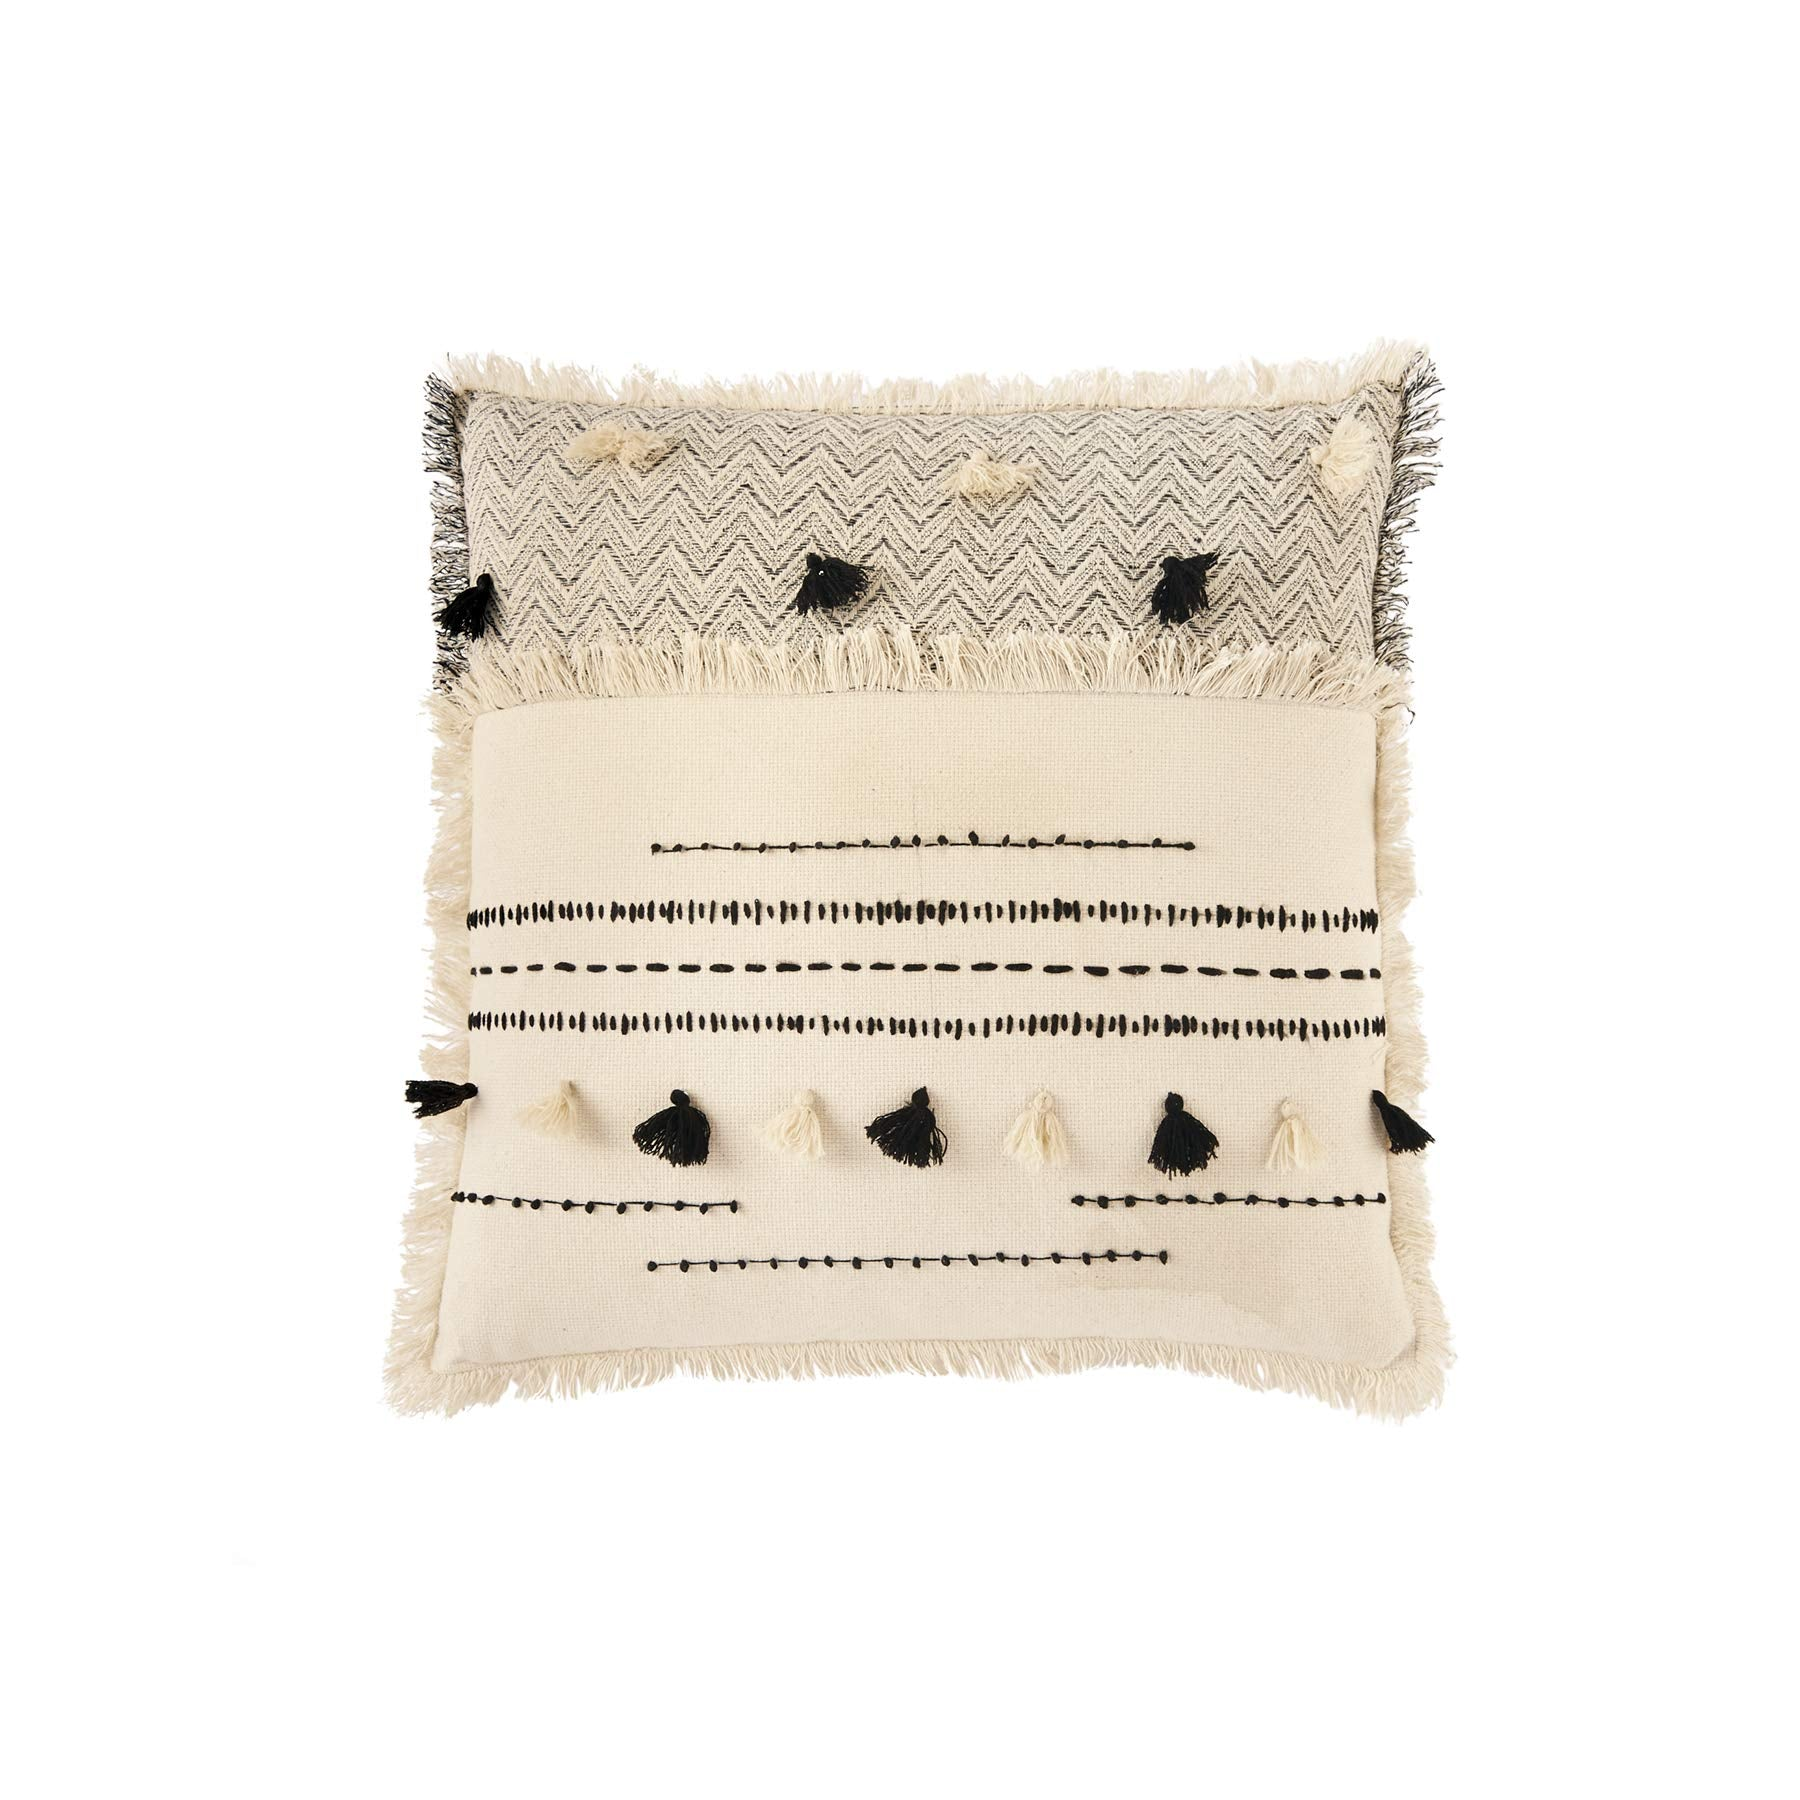 Mud Pie Woven Cotton Square Accent Pillow with Tassels-20 Decorative Pillow White, Black